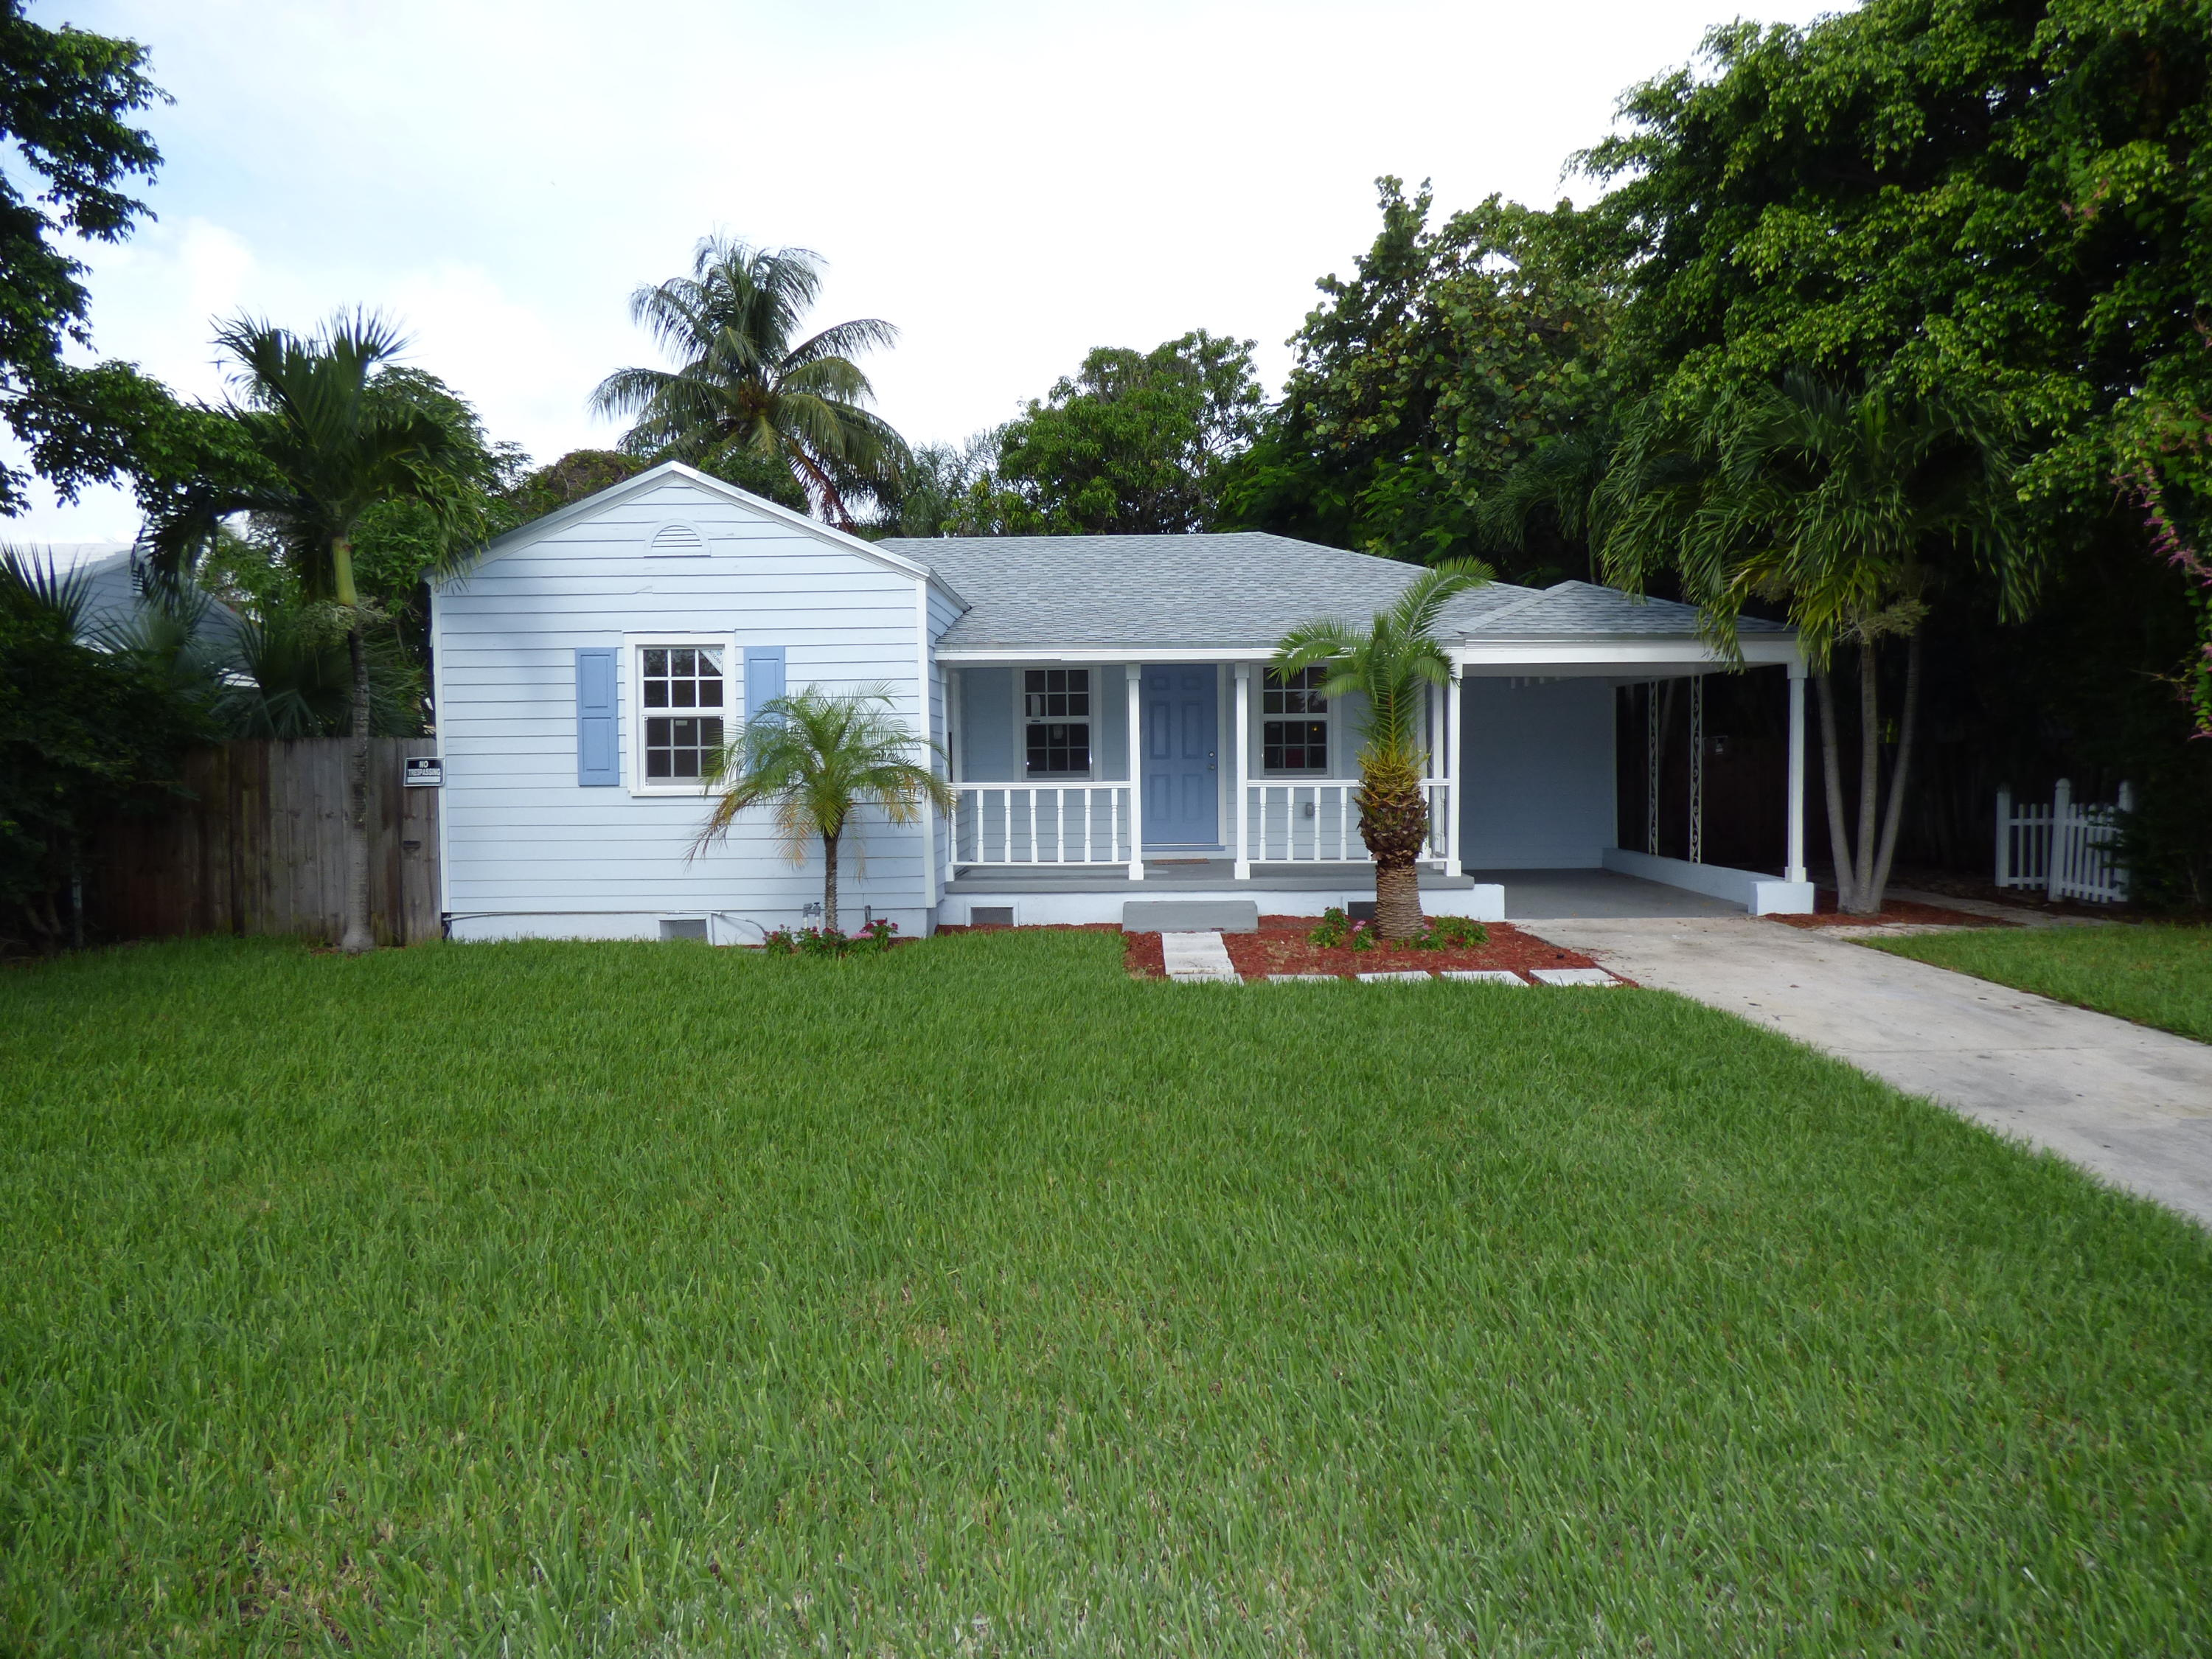 Home for sale in TUCSON ADD IN West Palm Beach Florida